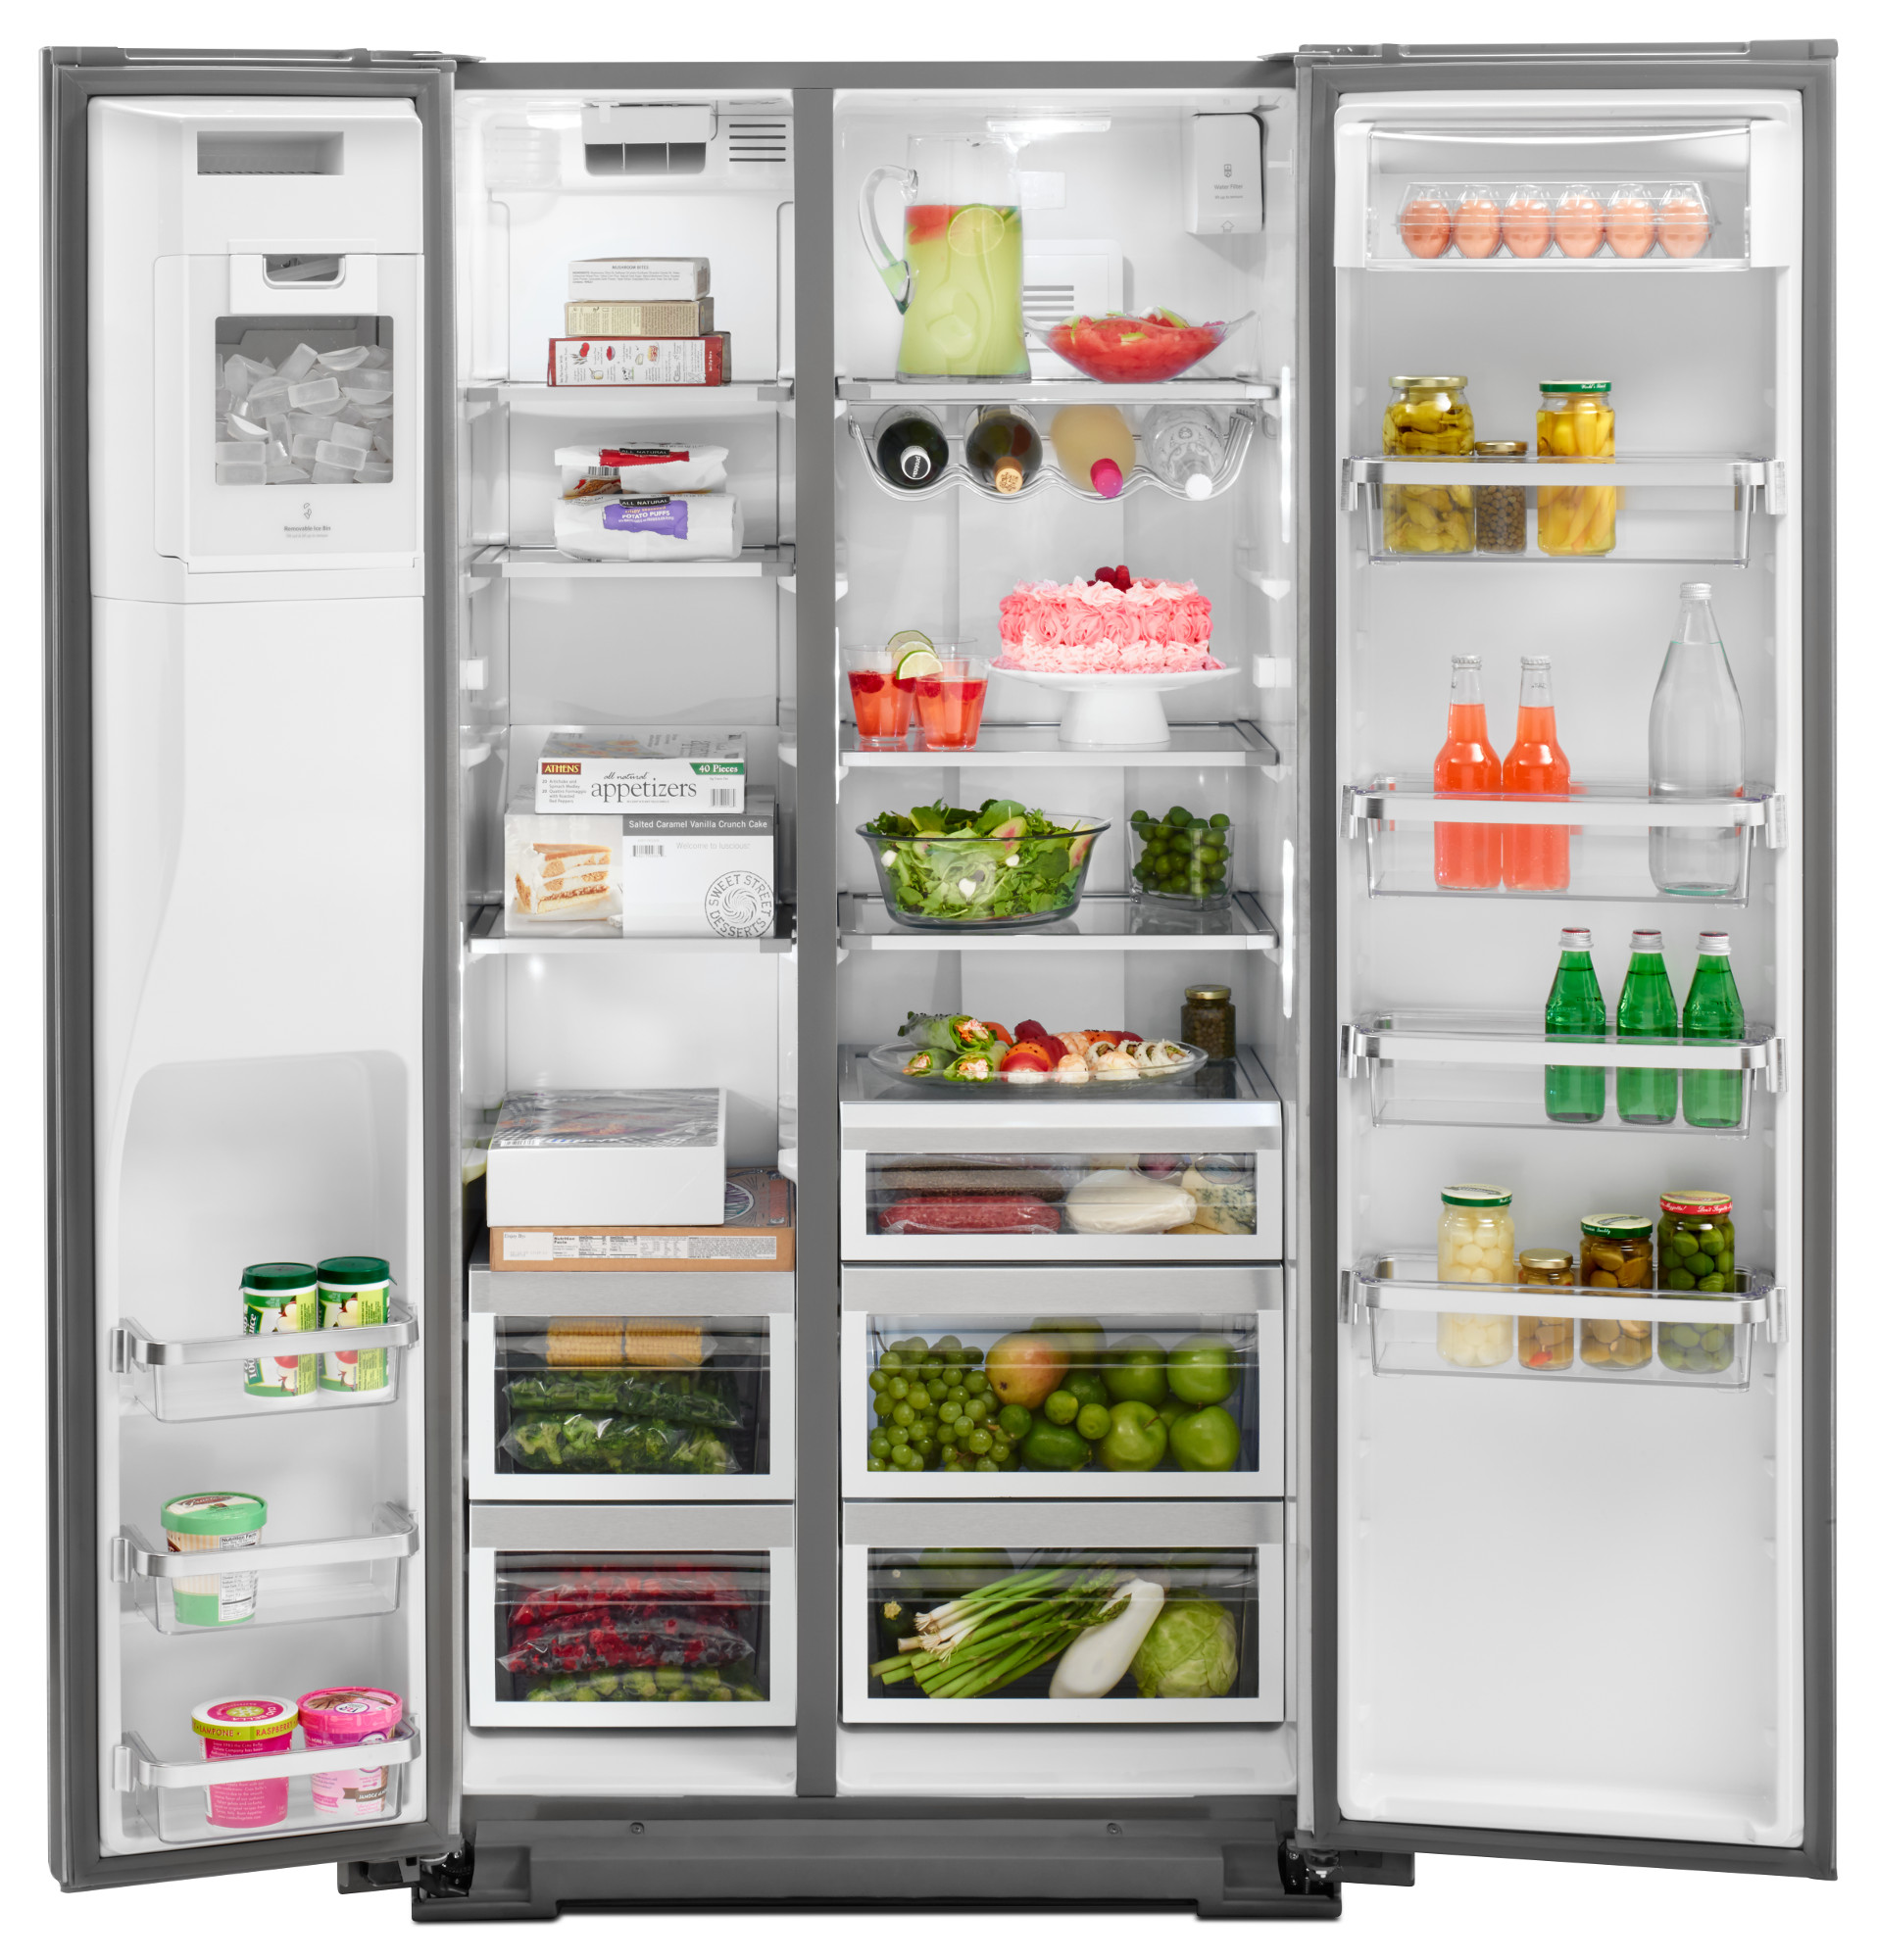 KitchenAid KRSC503ESS 22.7 cu. ft. Counter-Depth Side-by-Side Refrigerator - Stainless Steel